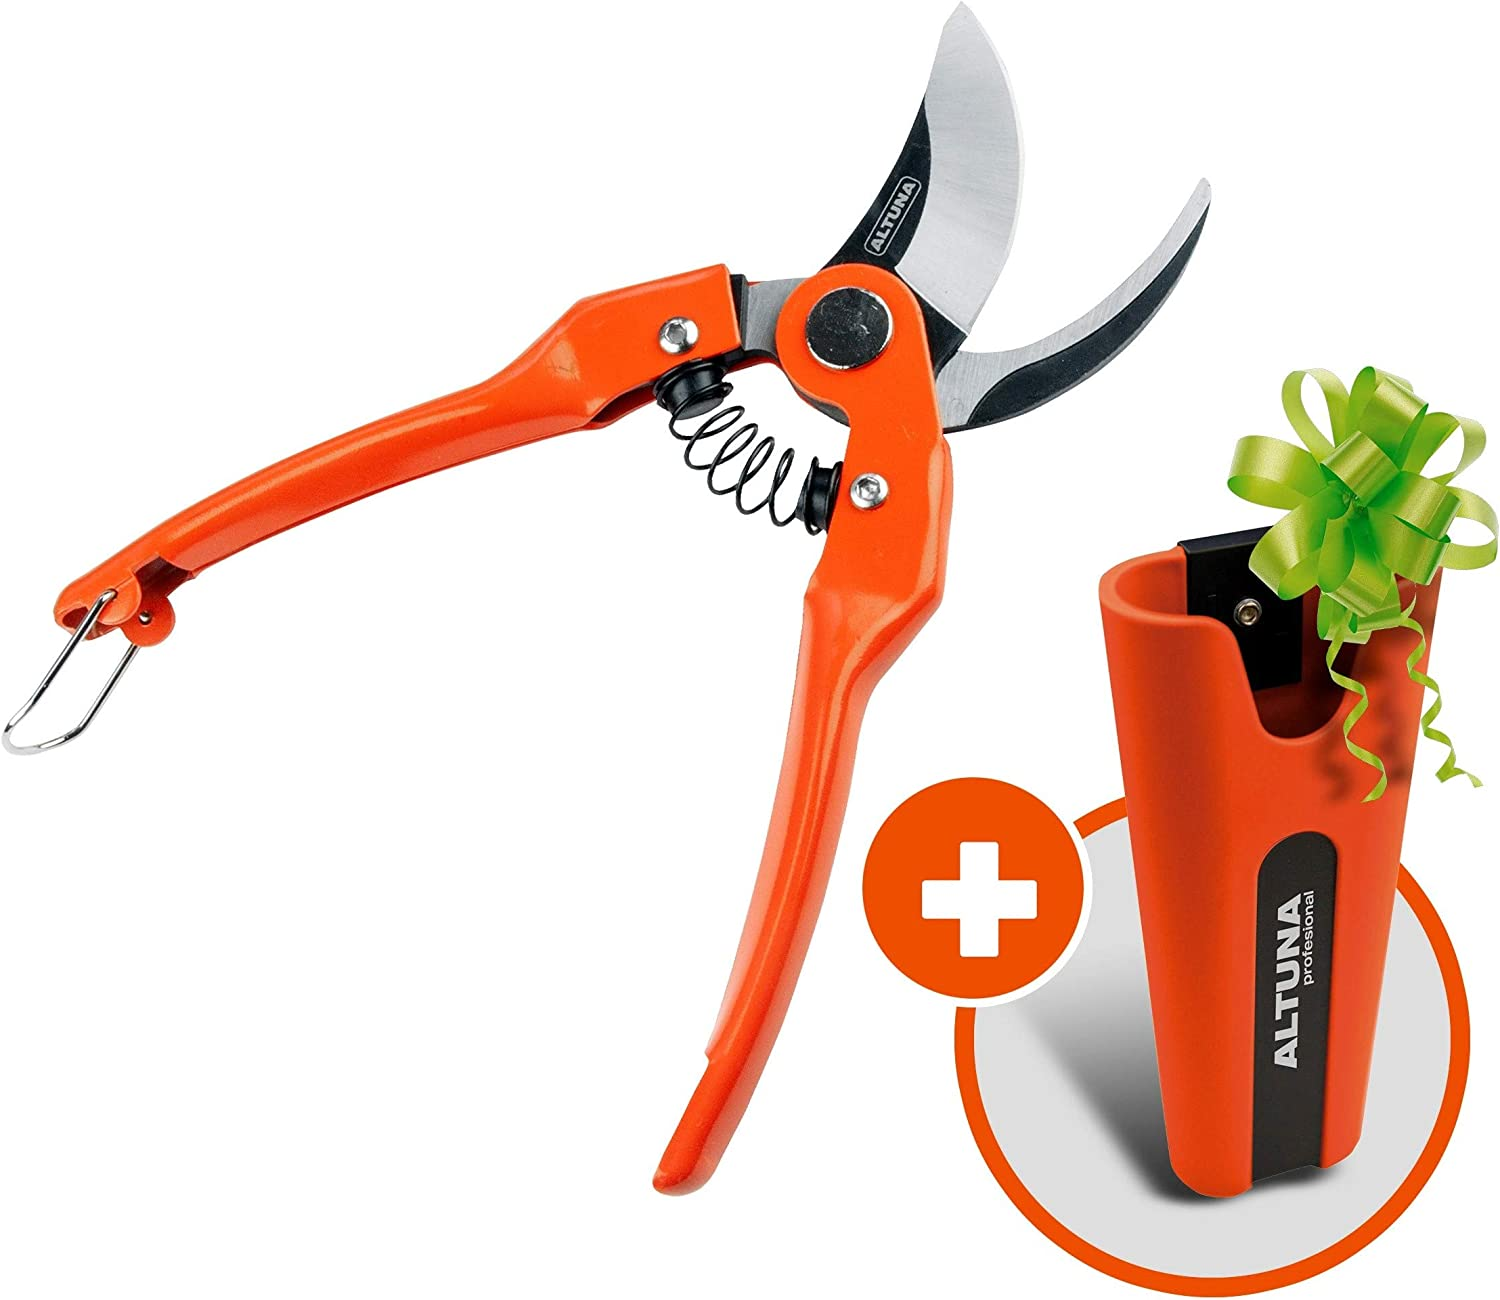 Pruner with Holster | Bypass Medium Size Steel Blades | Lightweight Traditional Pruning Shears | with Bonus Innovative All Weather Clip on Belt Flexible Pruner case Garden Tool Pouch